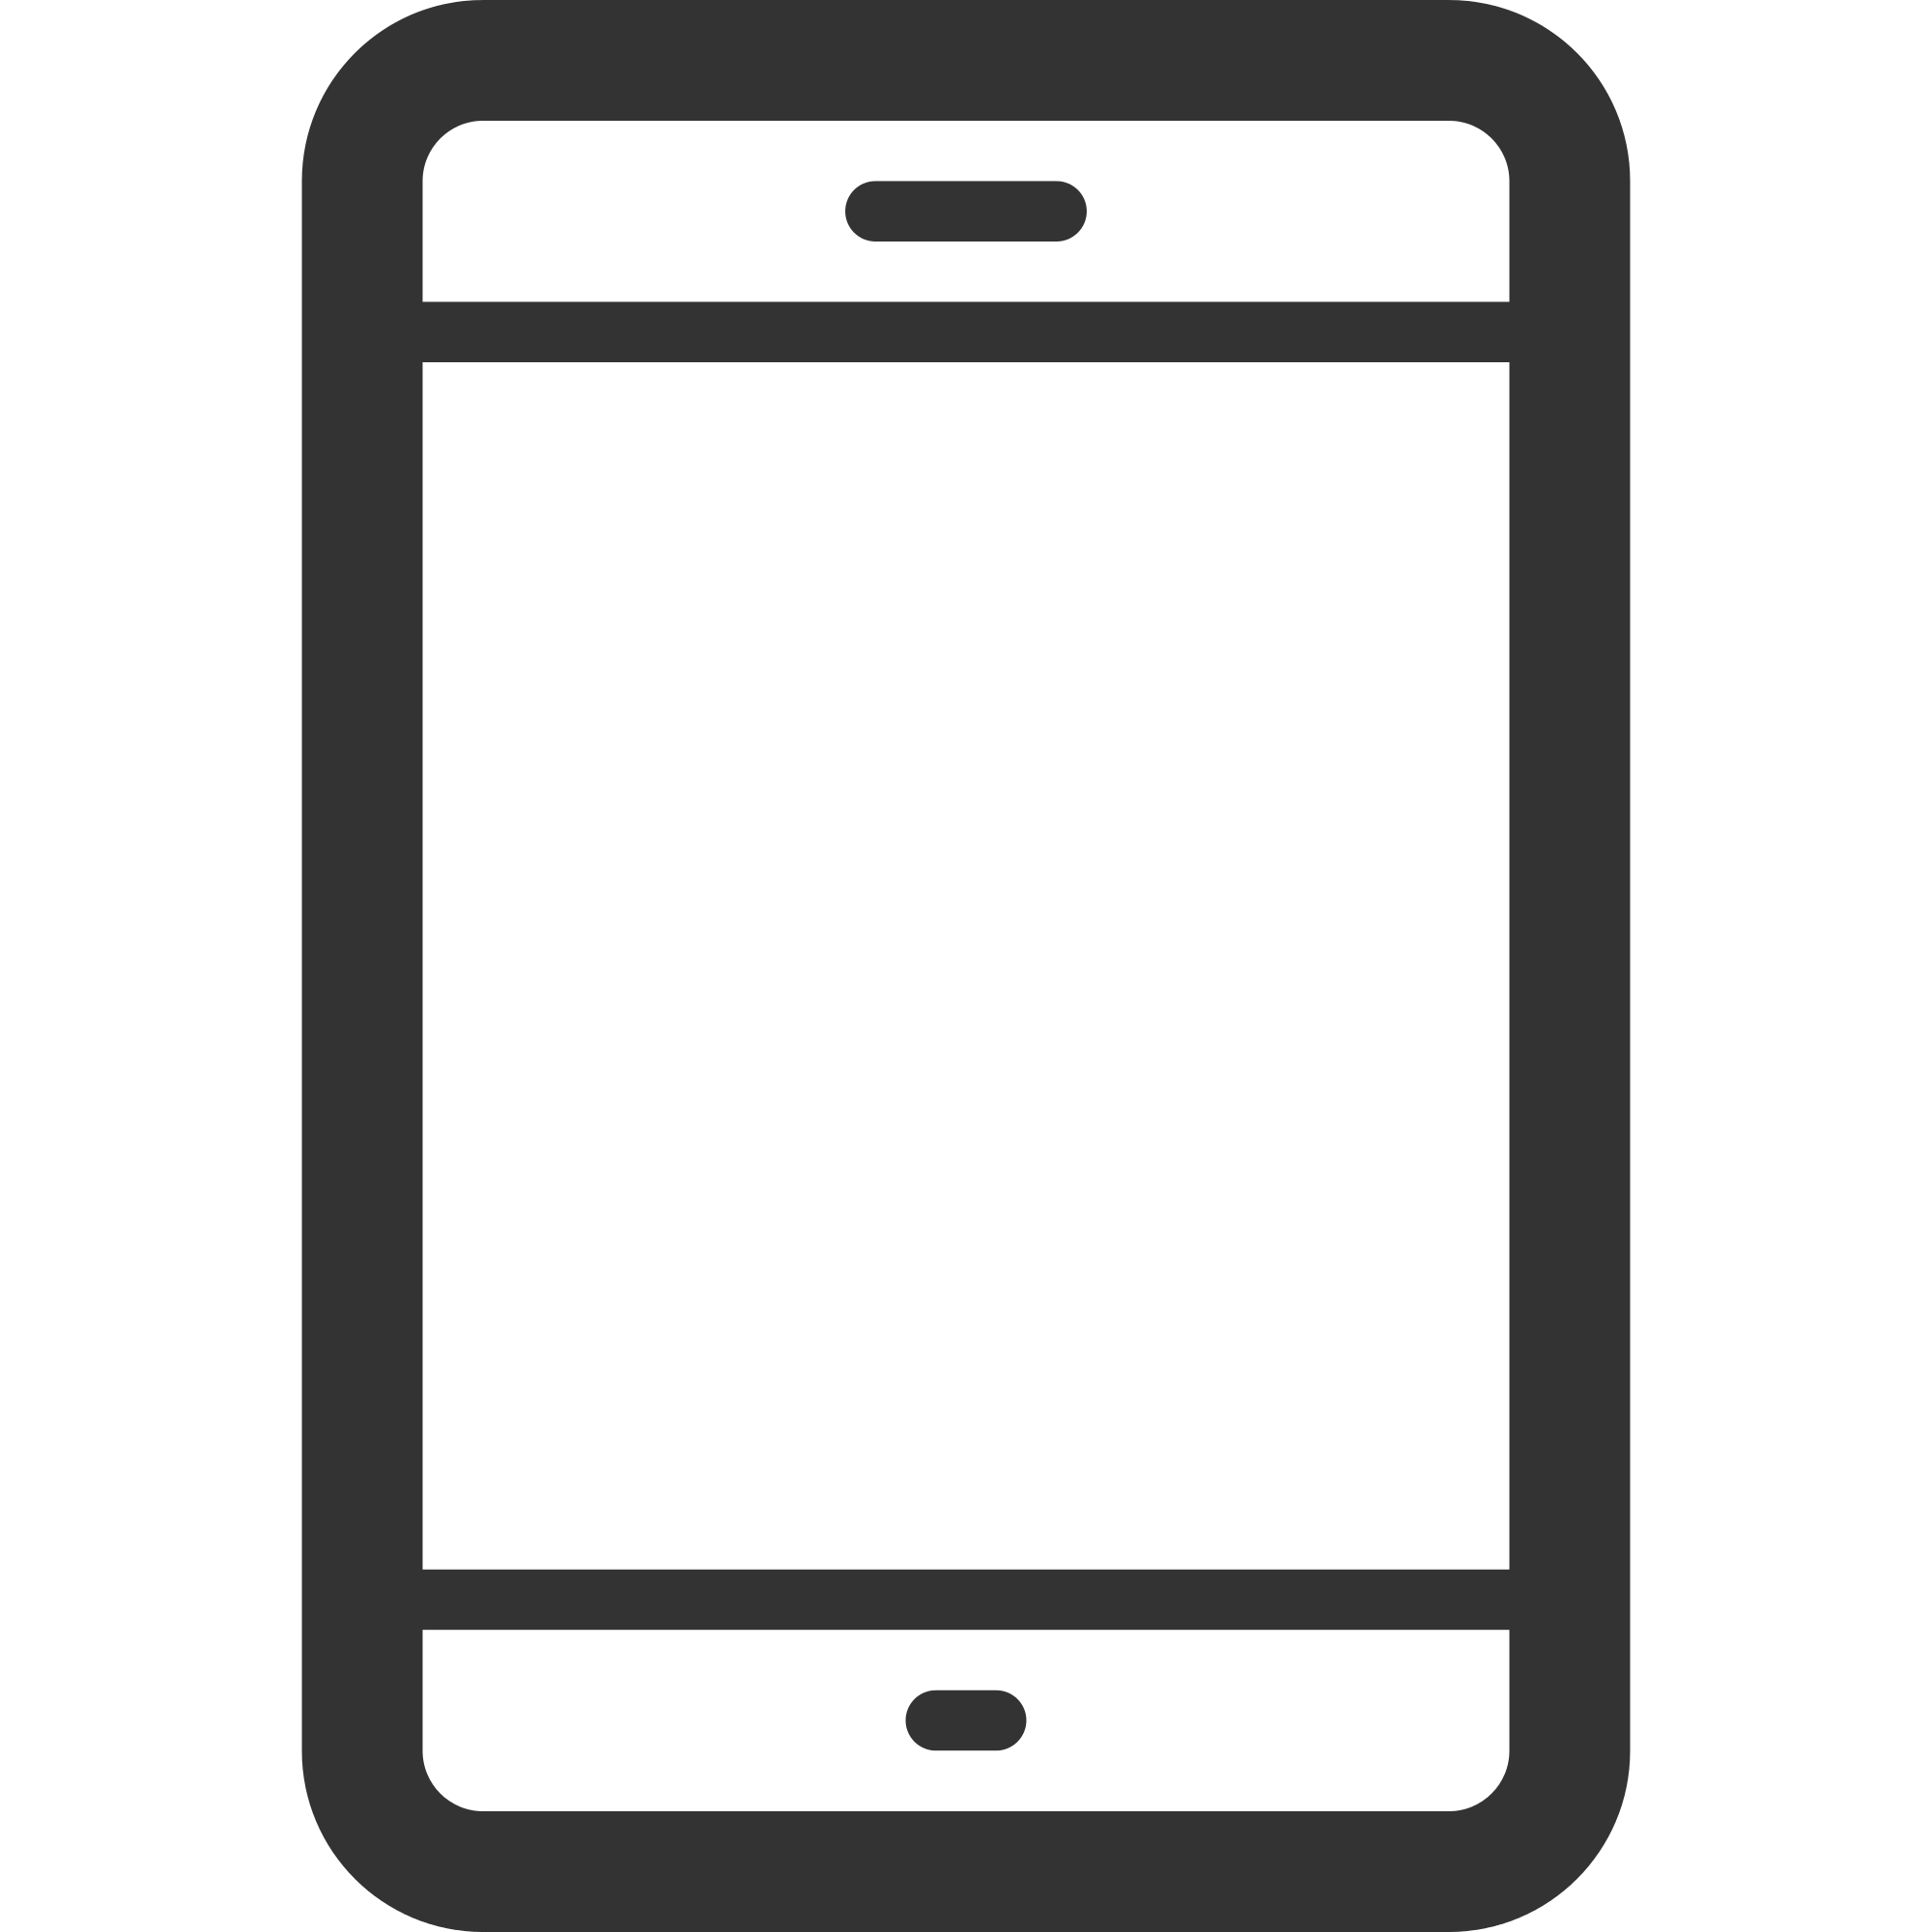 File linecons smartphone svg. Clipart telephone outline